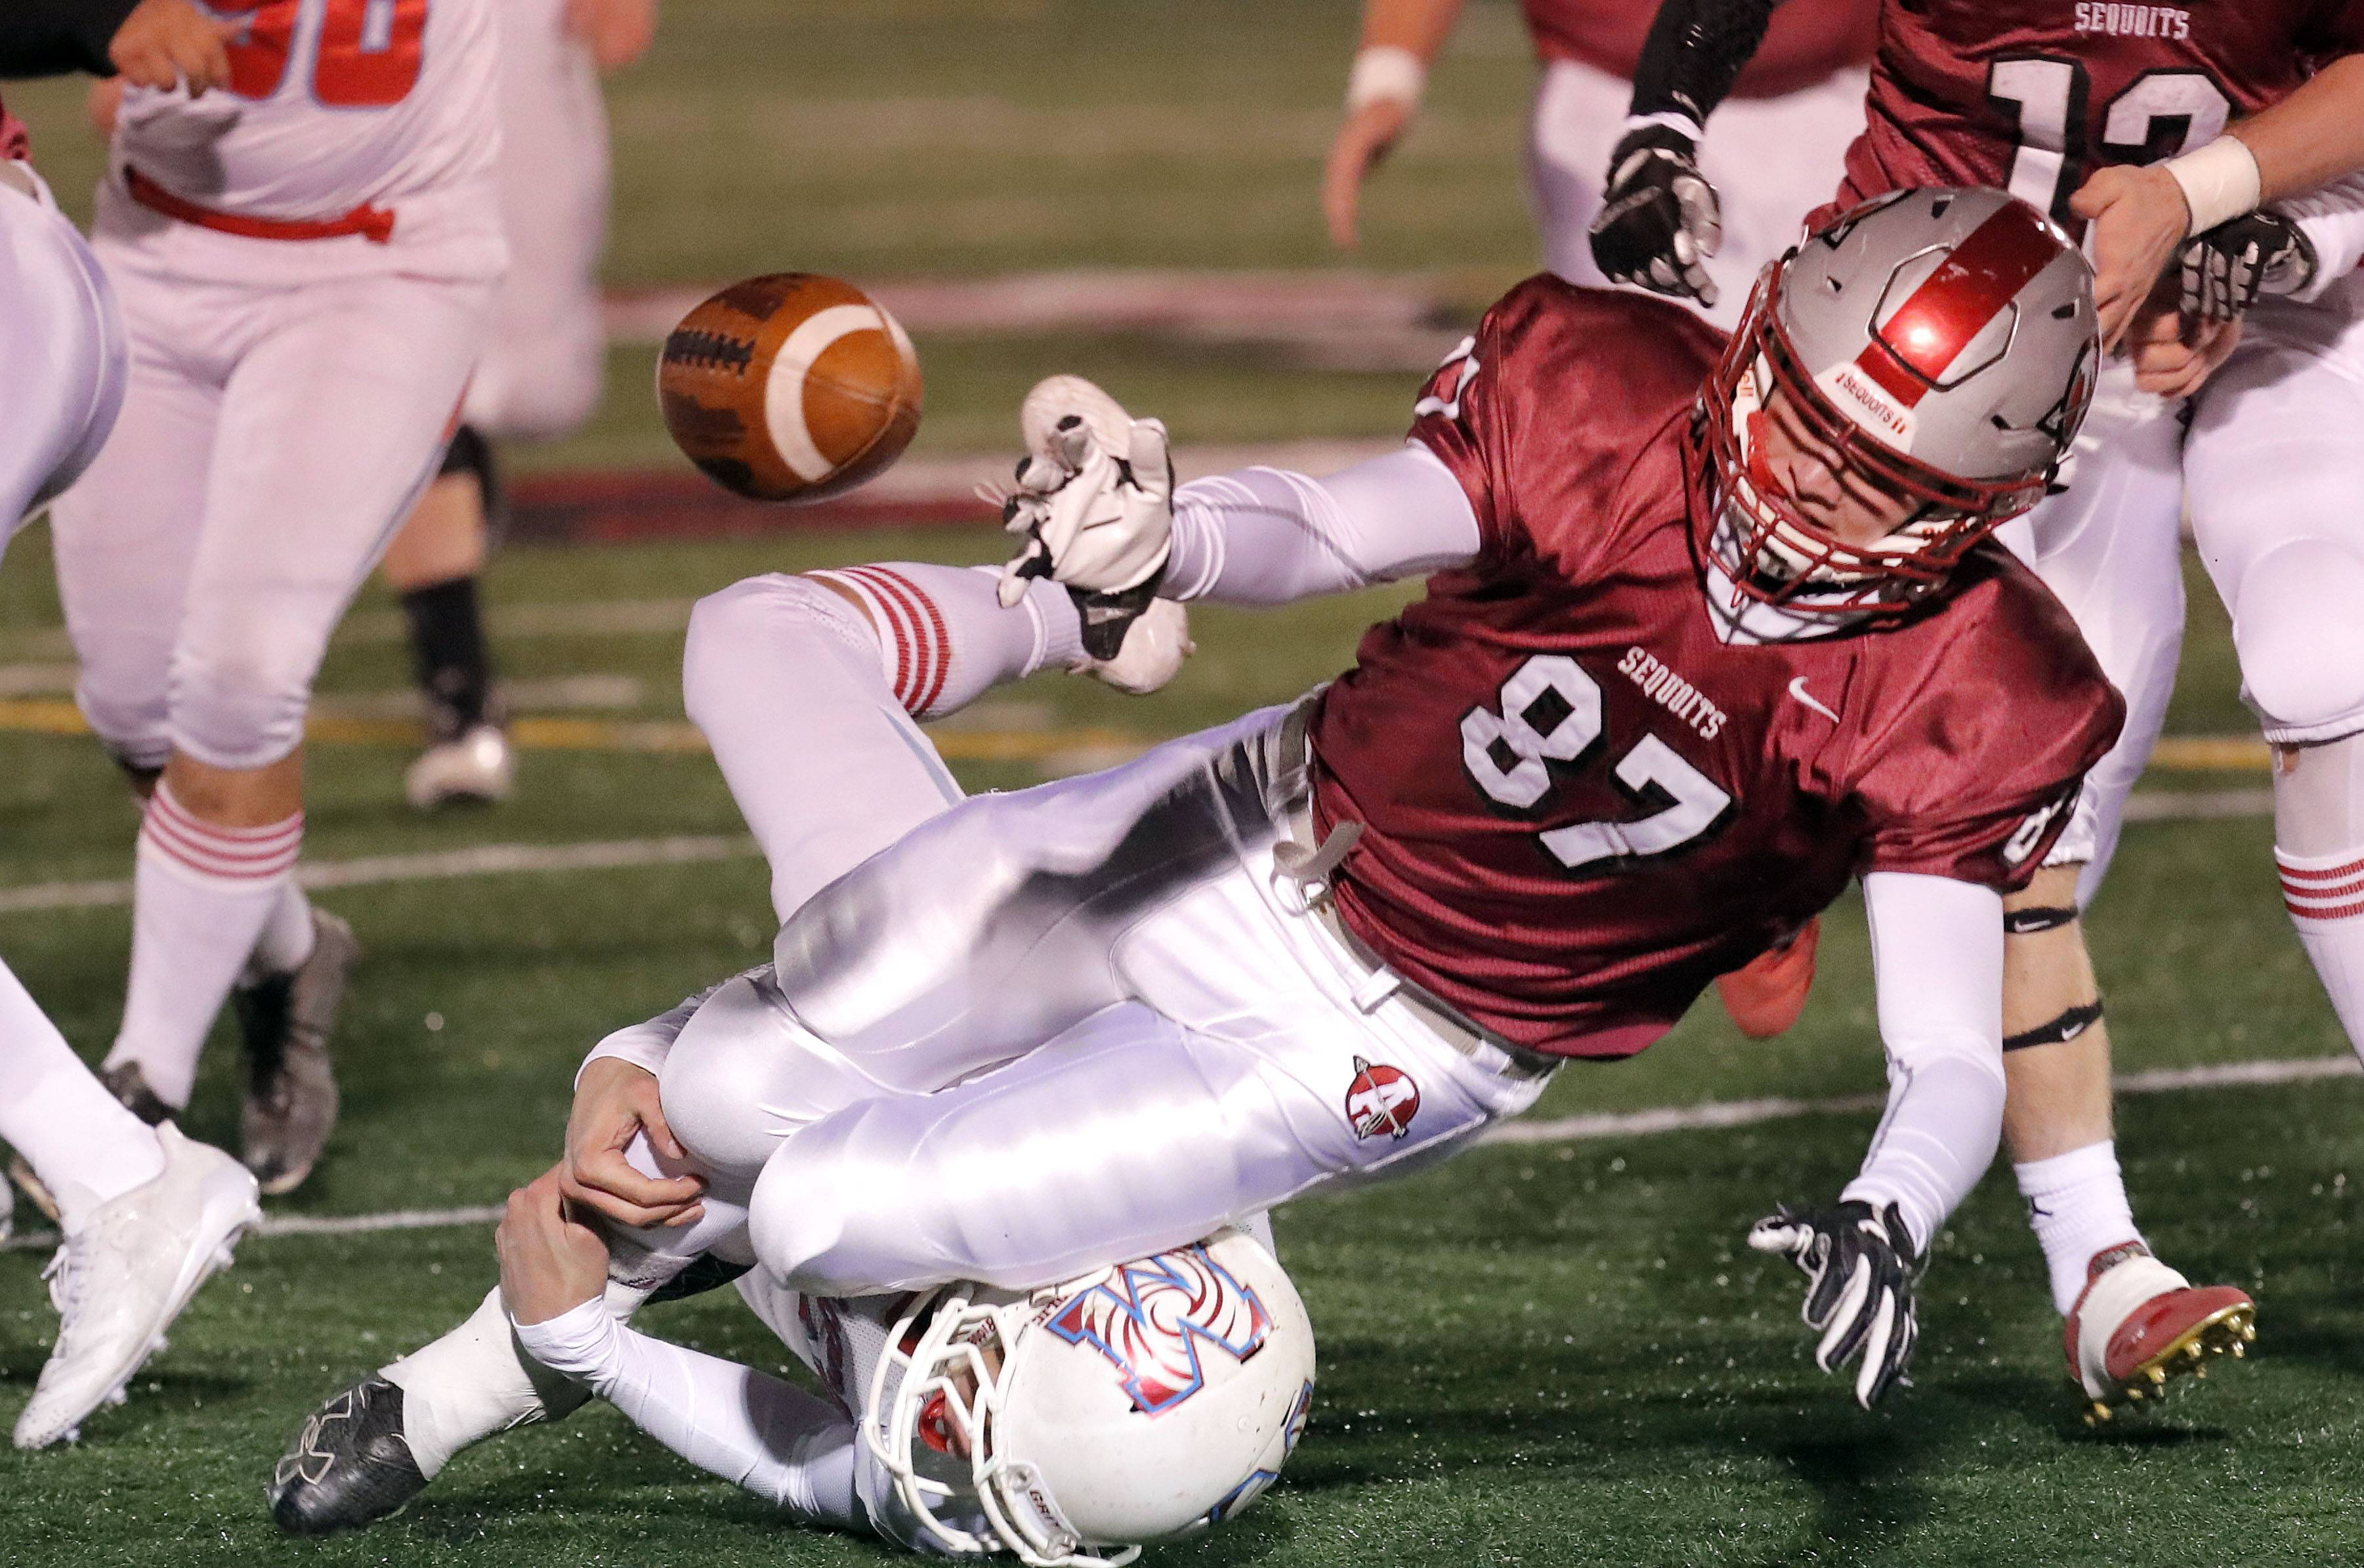 Antioch's Benjamin Nauman (87) fumbles against Marian Central during Class 5A first-round playoff action Friday in Antioch.